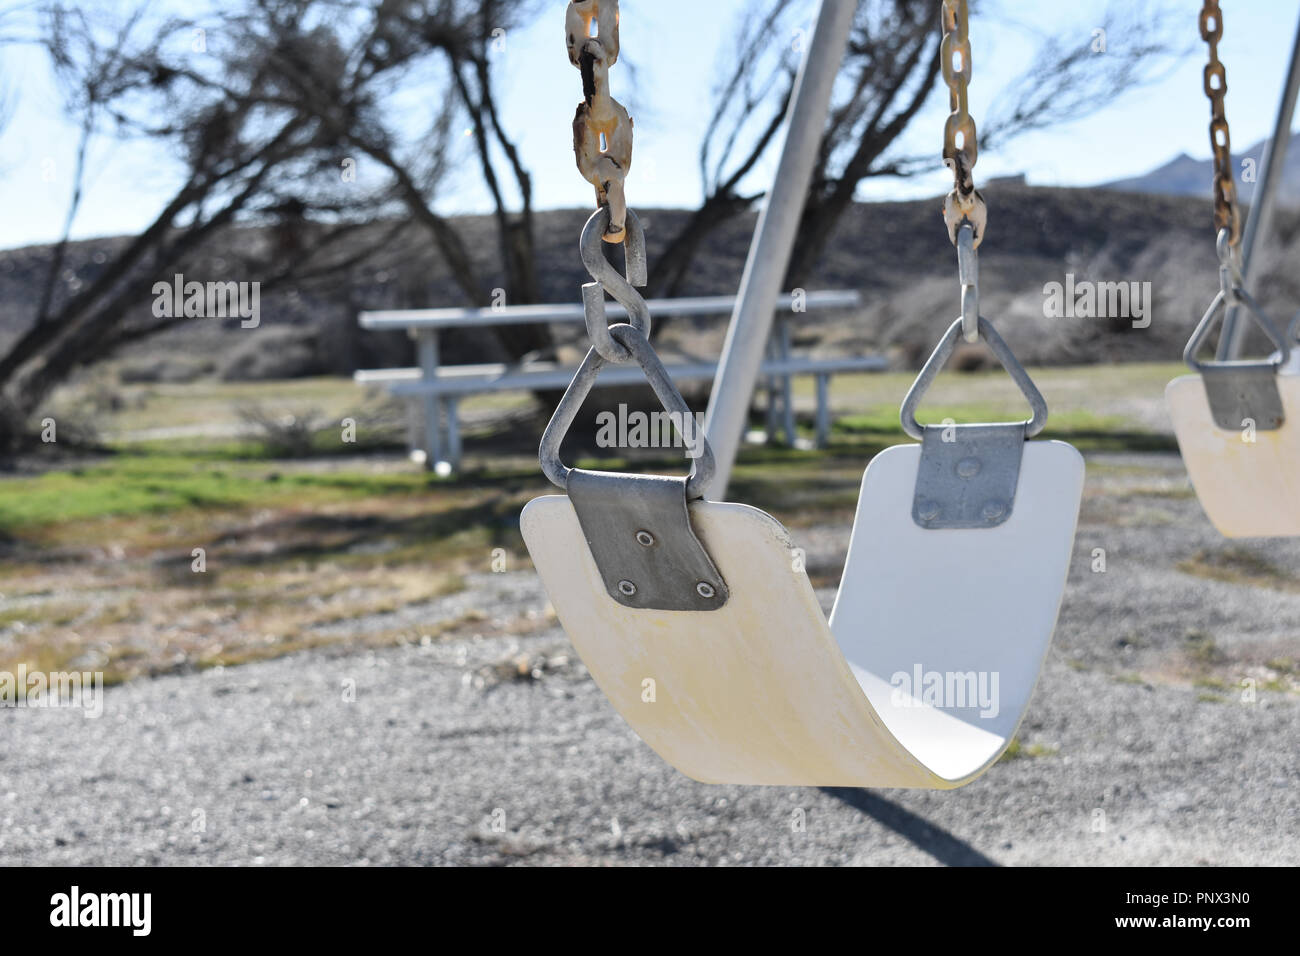 White Swing In An Abandoned Playground Stock Photo Alamy